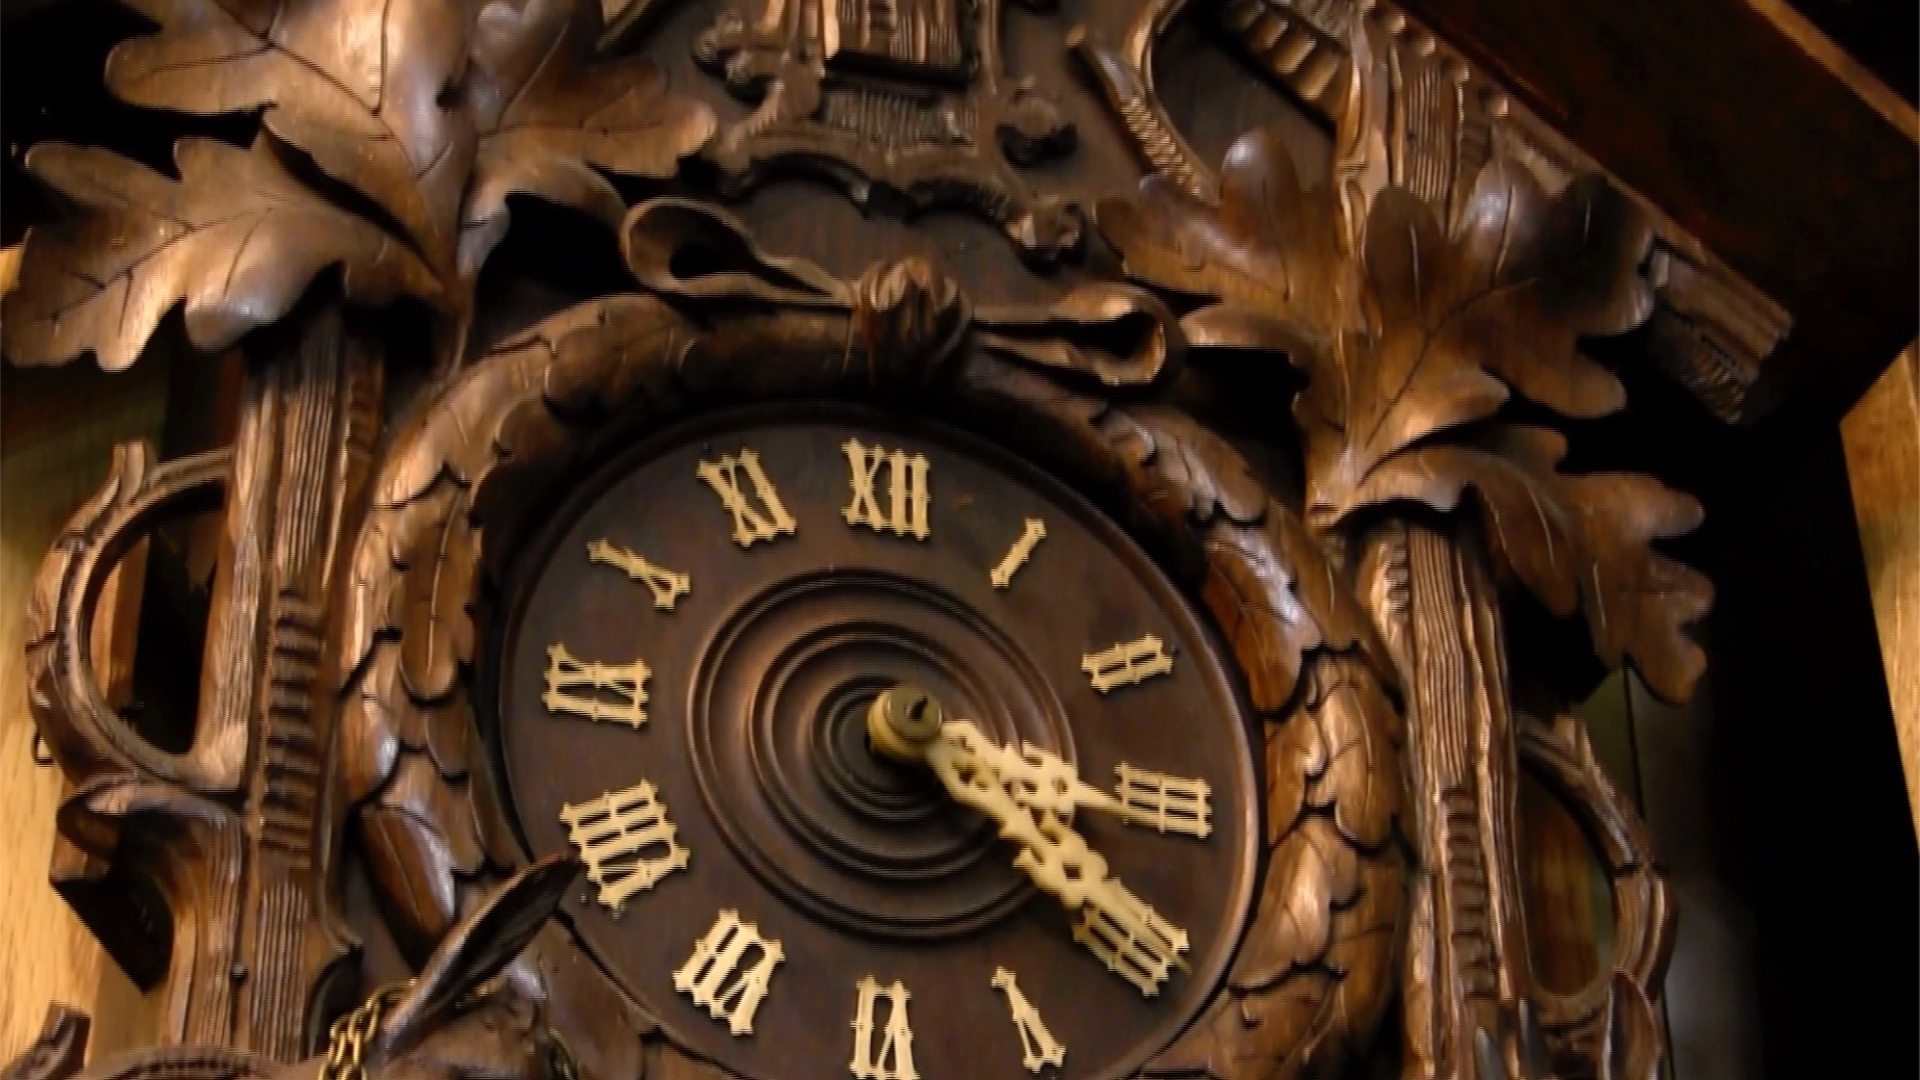 Inside the World of Clocks